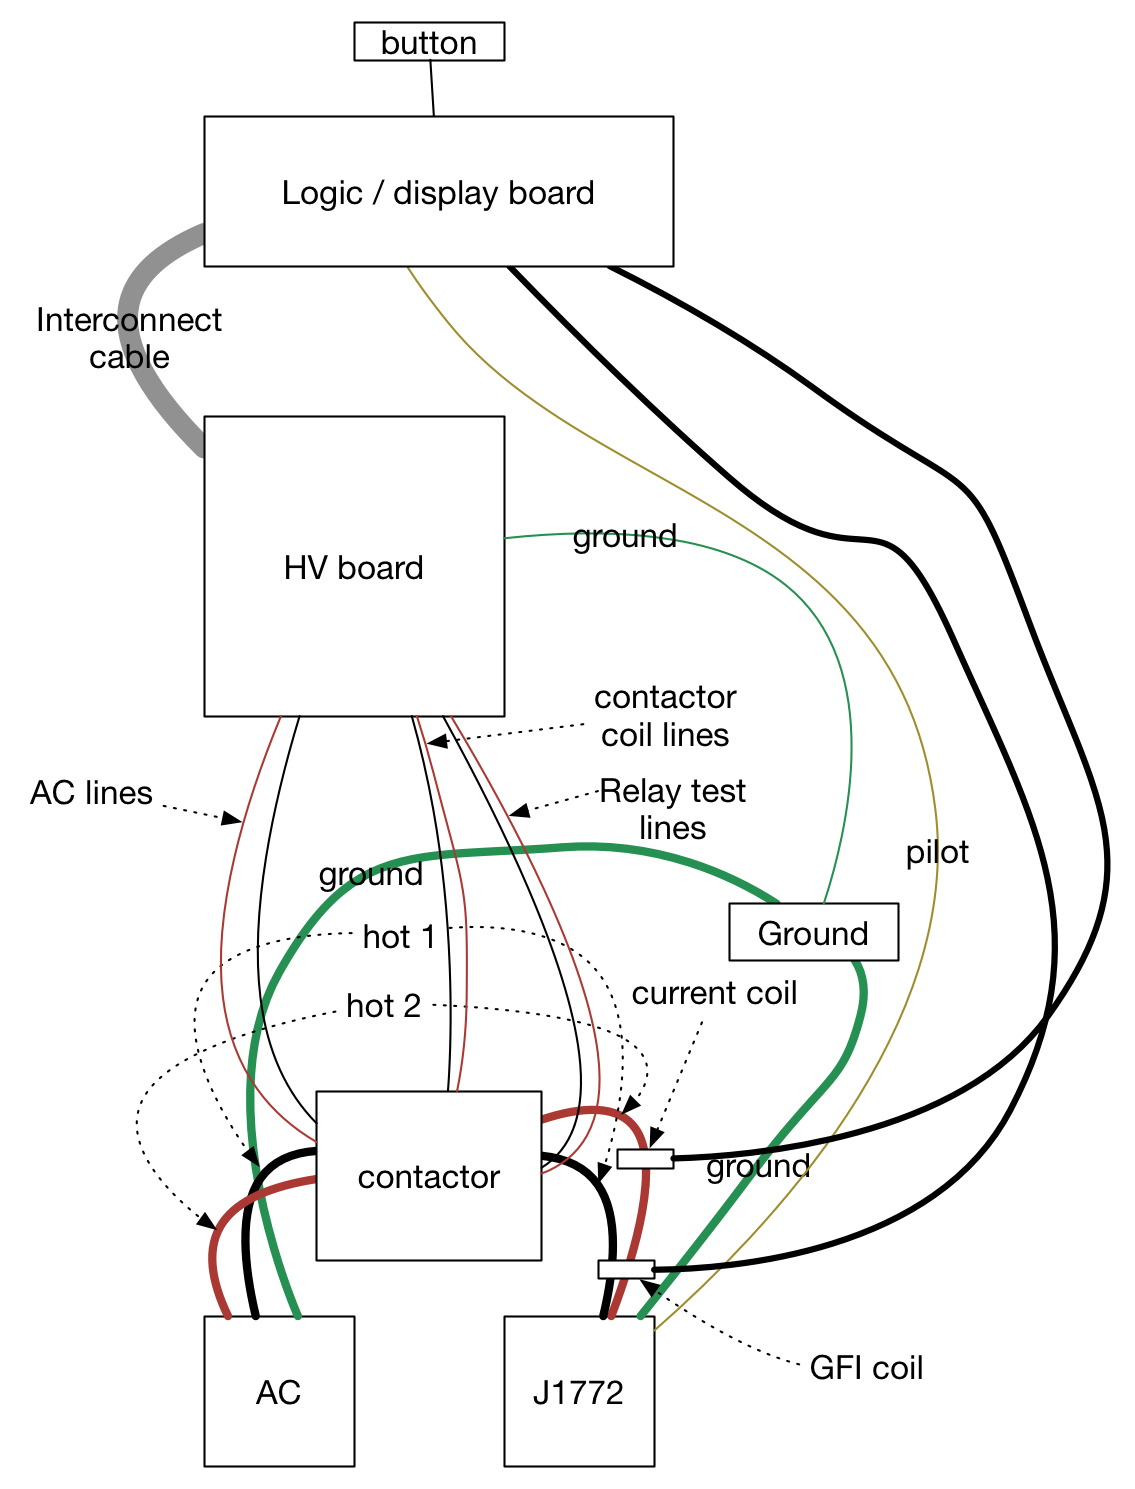 24 Volt Contactor Wiring Diagram on Spa 220 Wiring Diagram